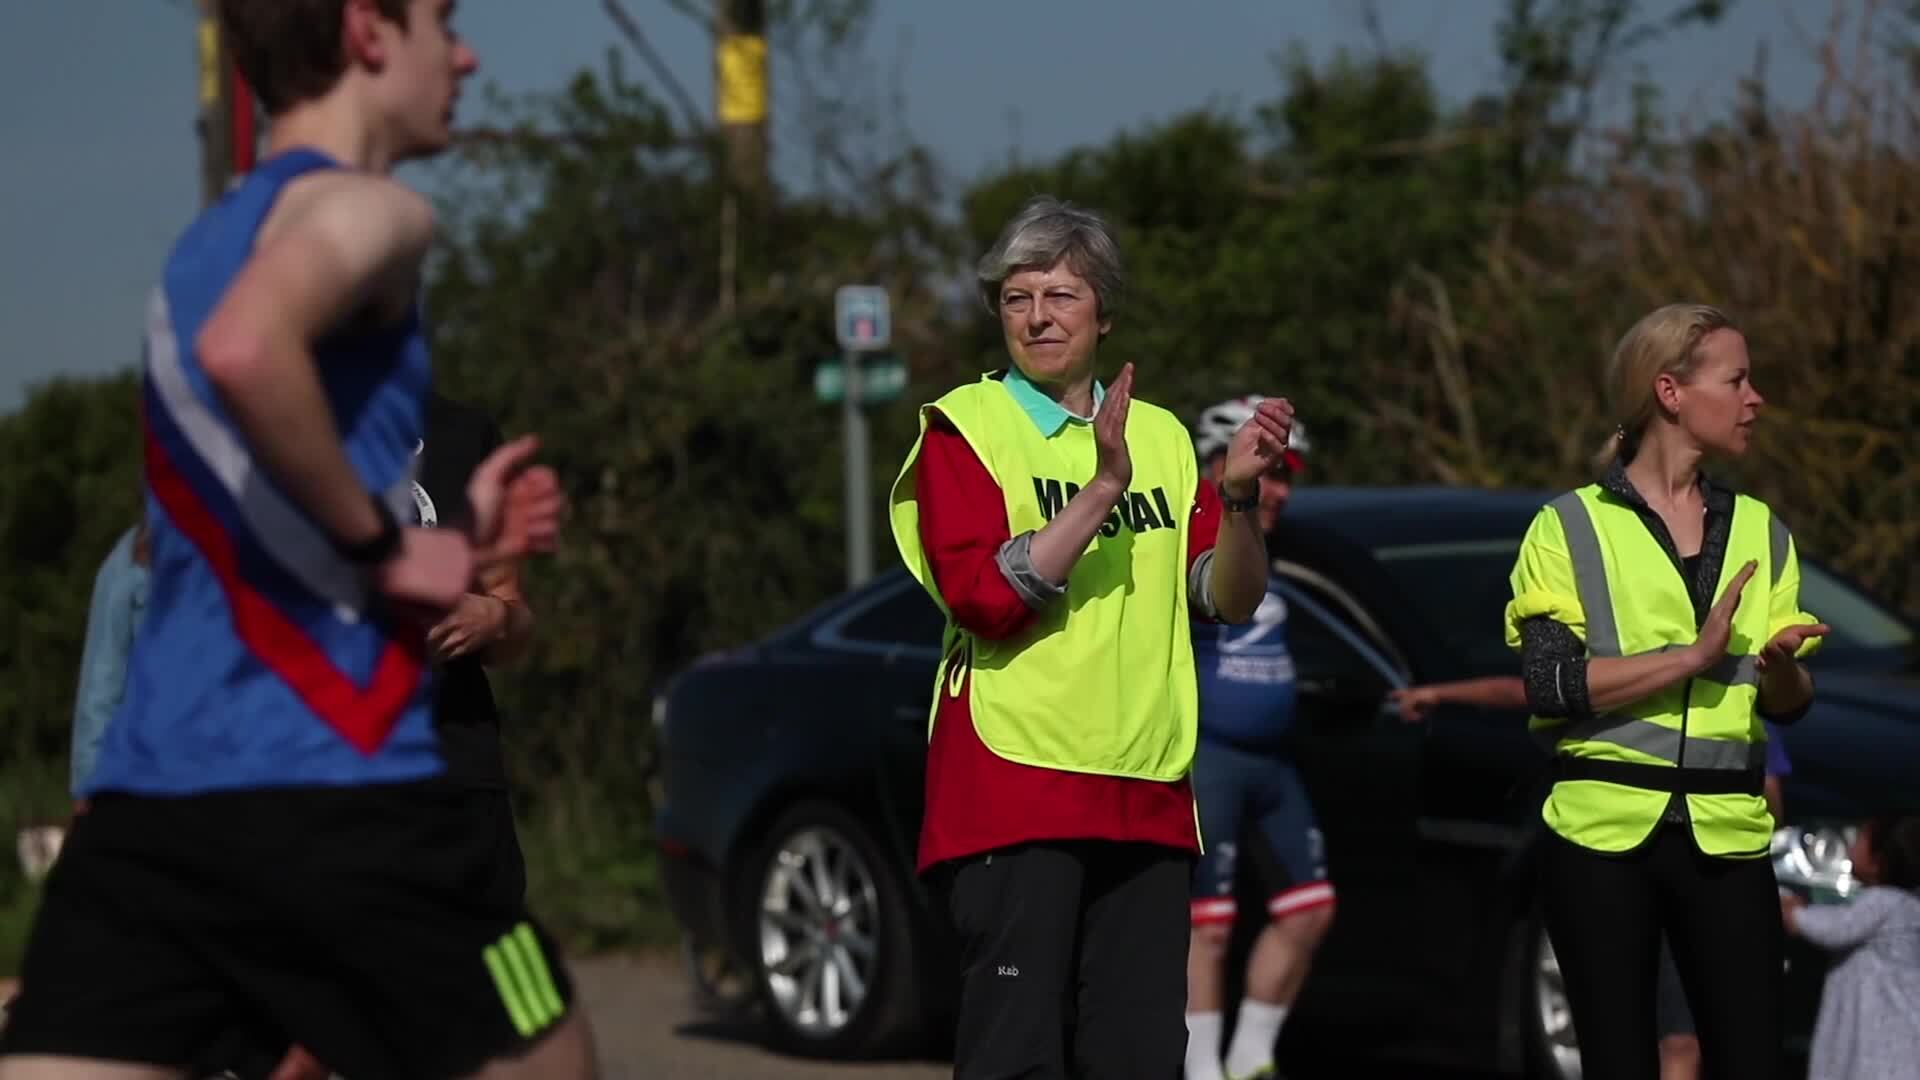 Theresa May spotted marshalling 10k Easter race in Maidenhead